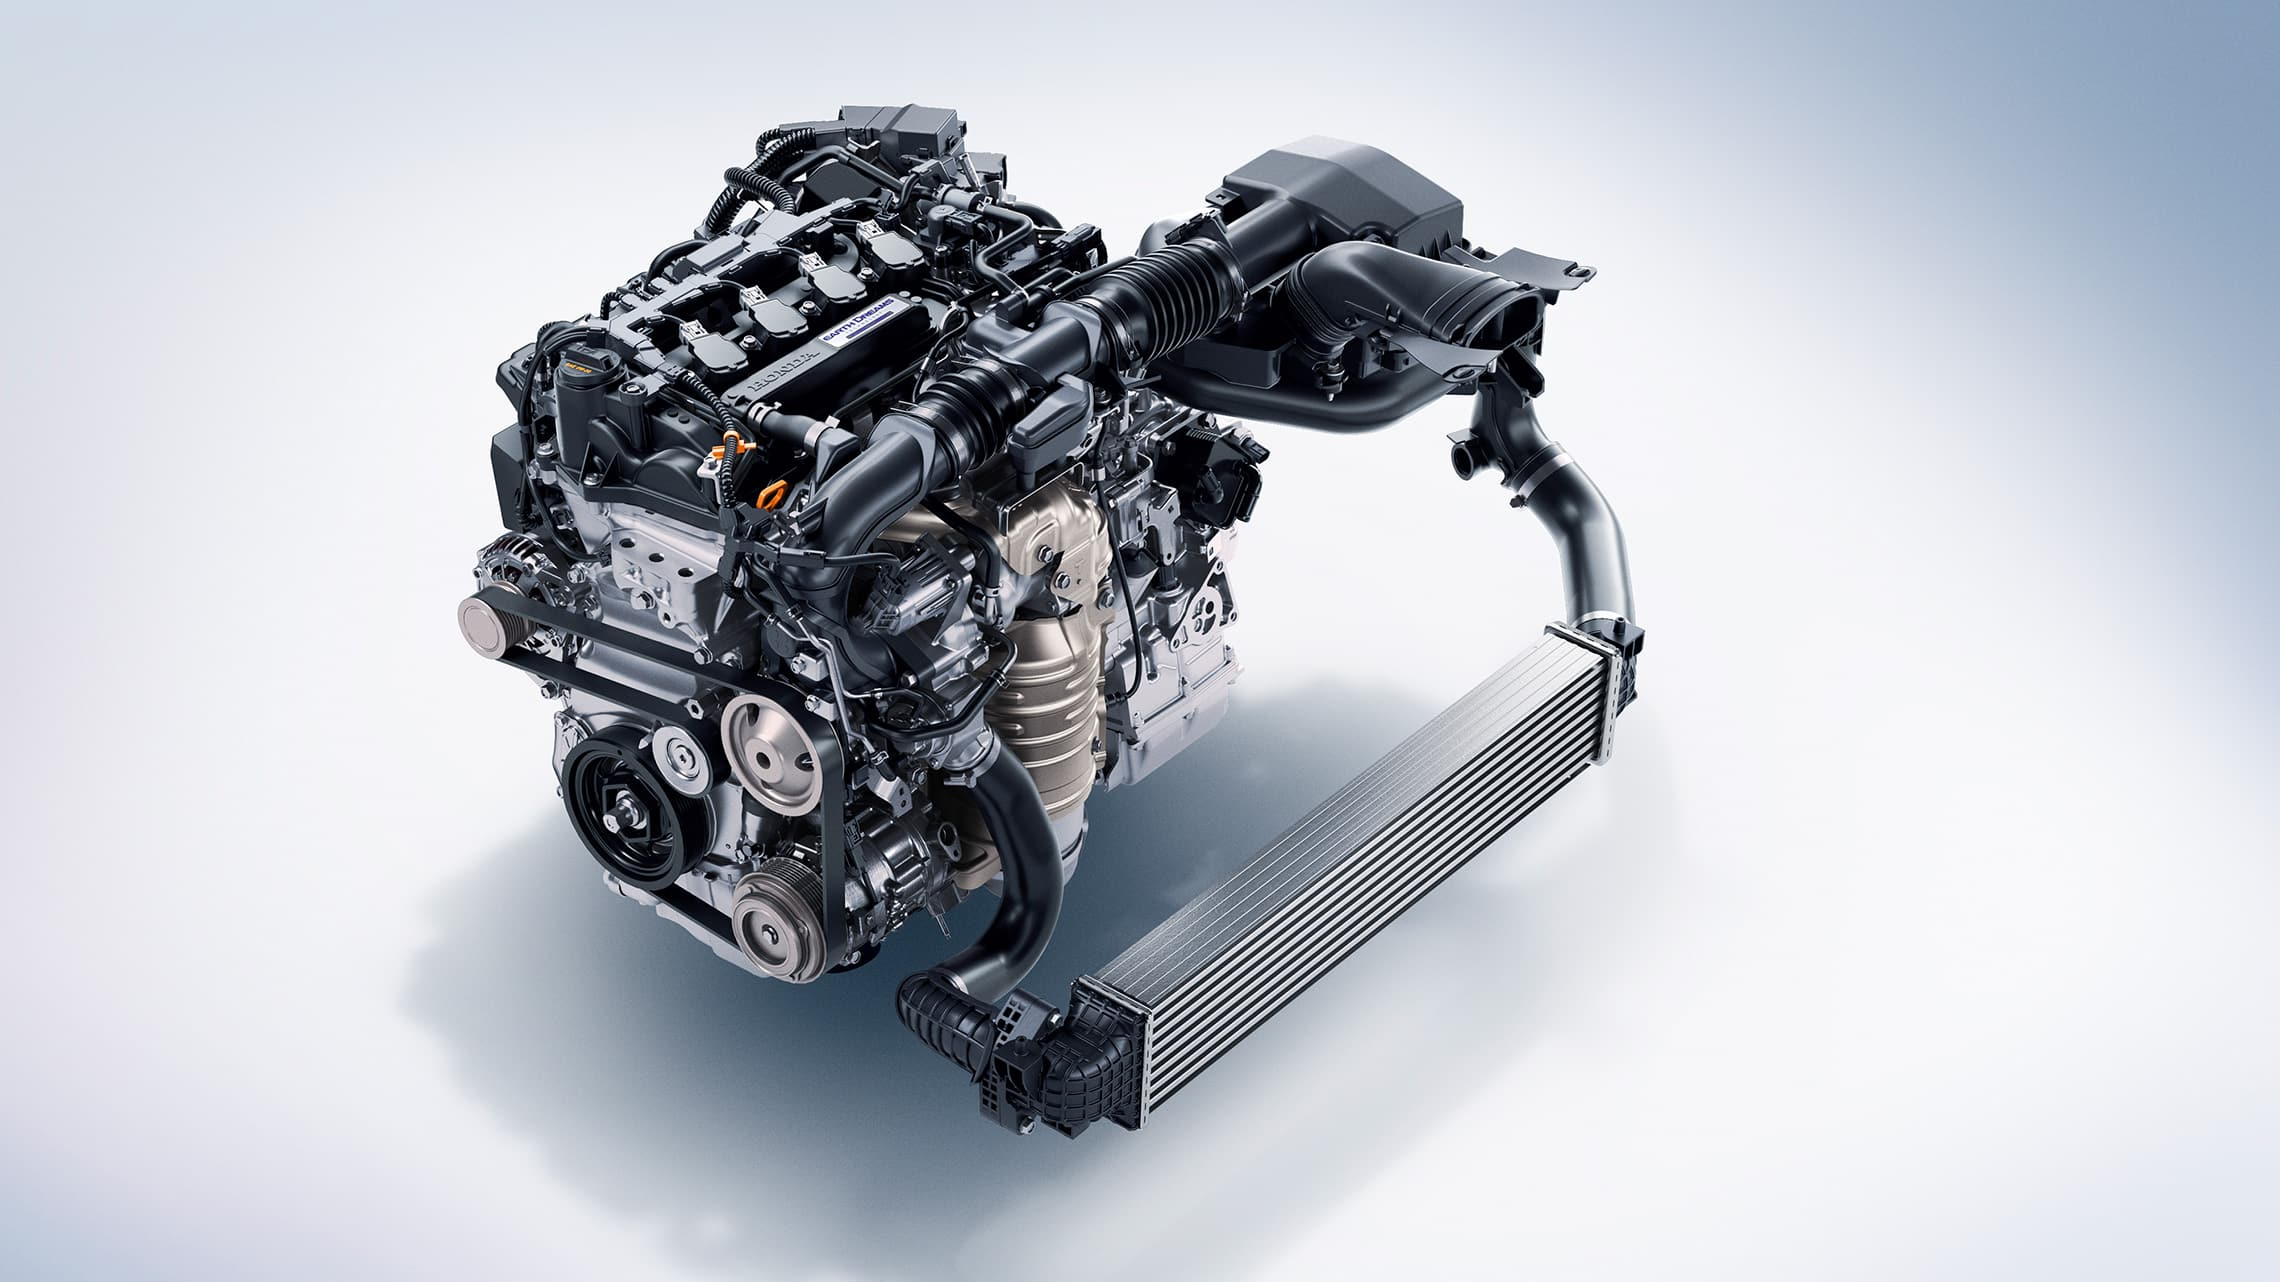 1.5-liter turbocharged engine detail on the 2020 Honda Accord.